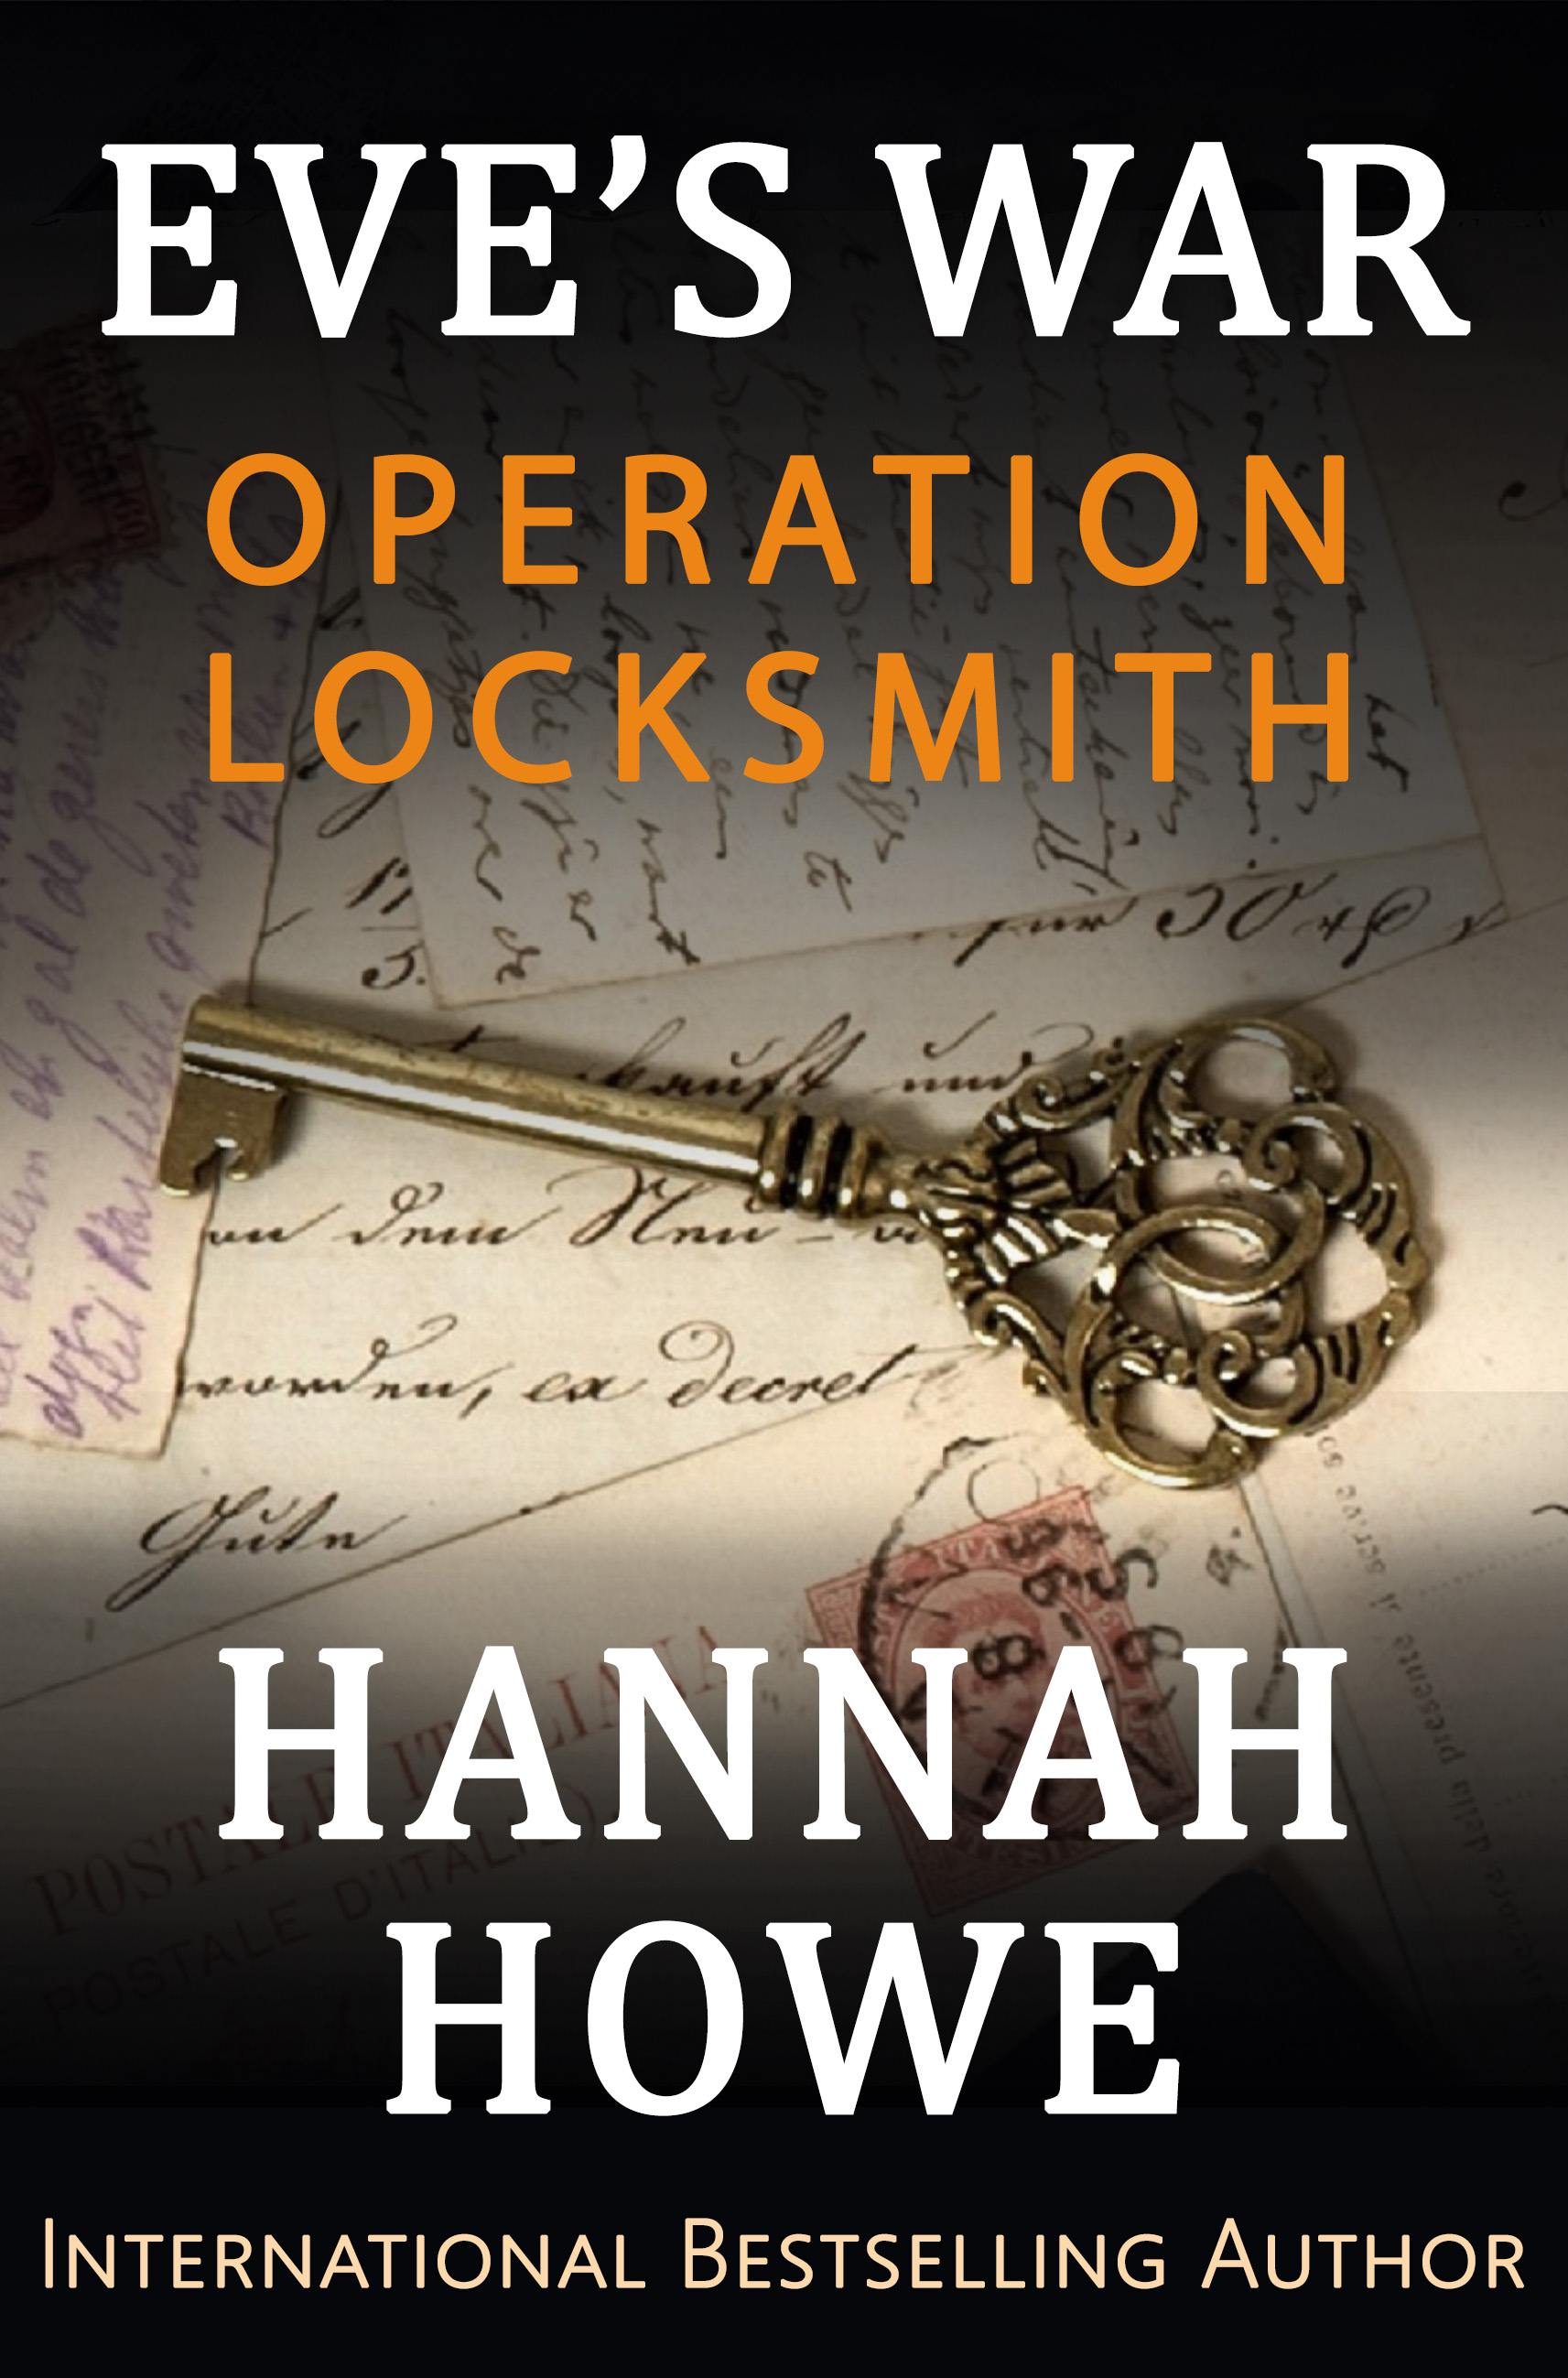 EVE'S WAR OPERATION LOCKSMITH MASTER